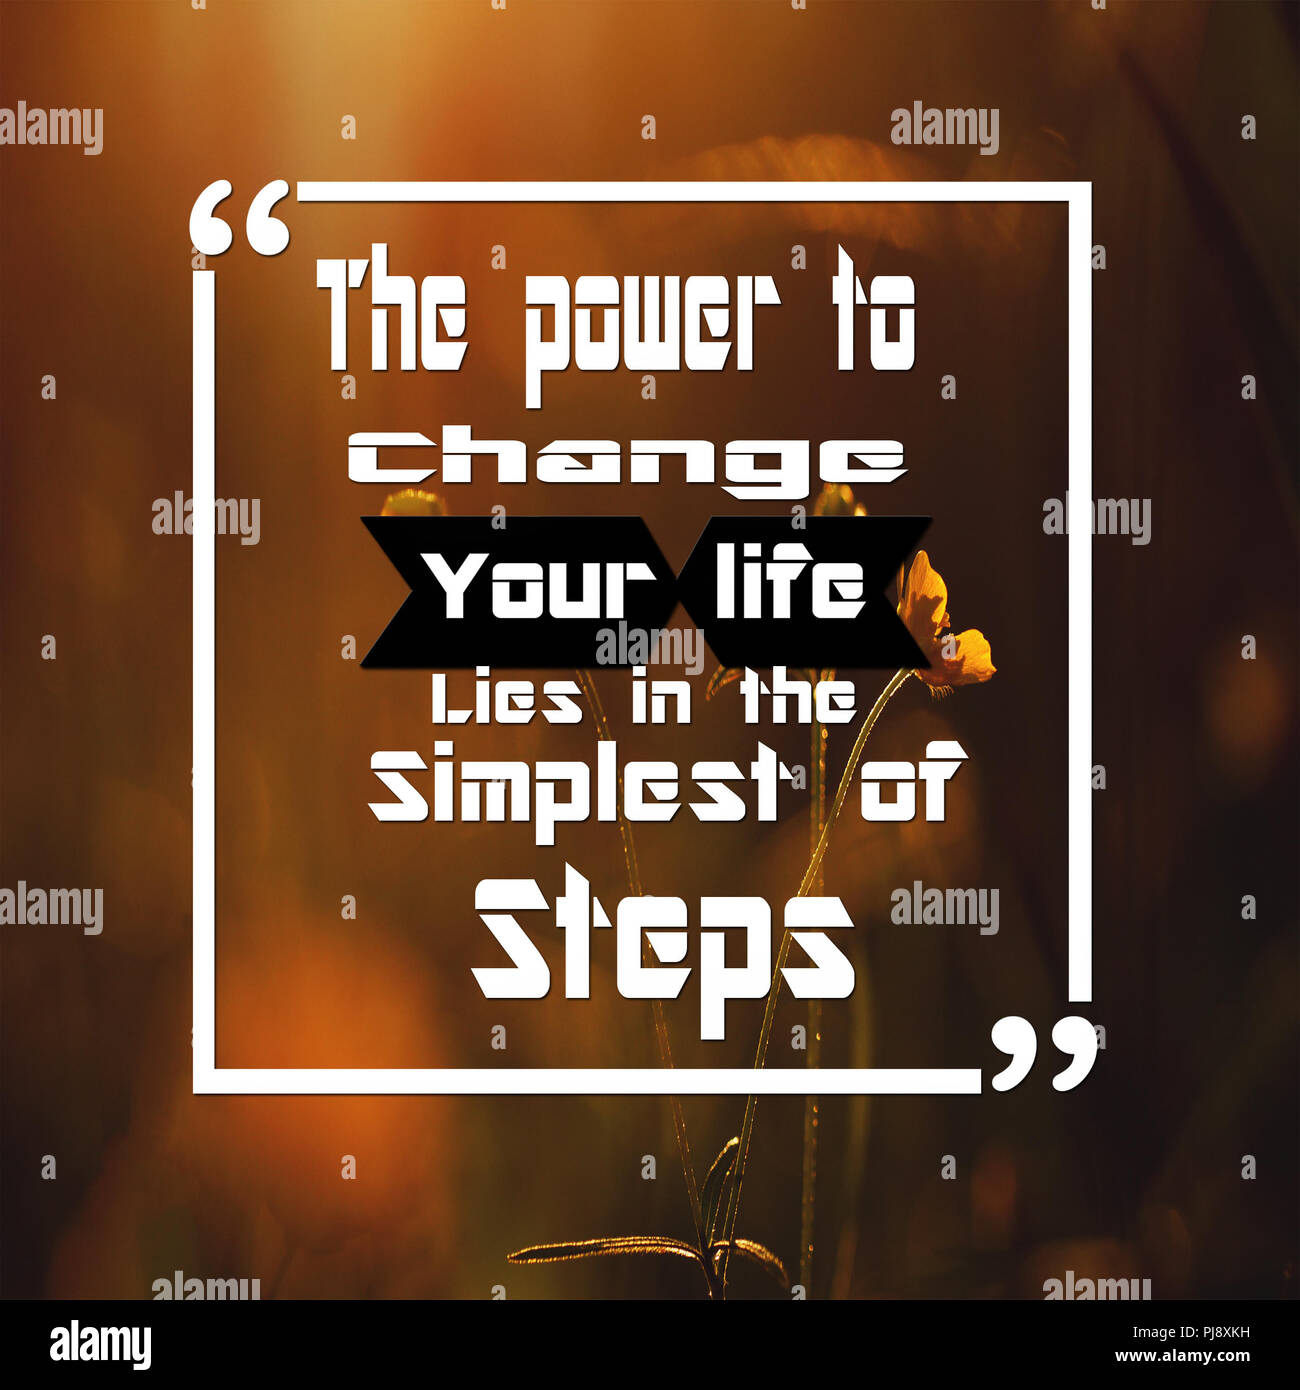 Inspirational Quotes The Power To Change Your Life Lies In The